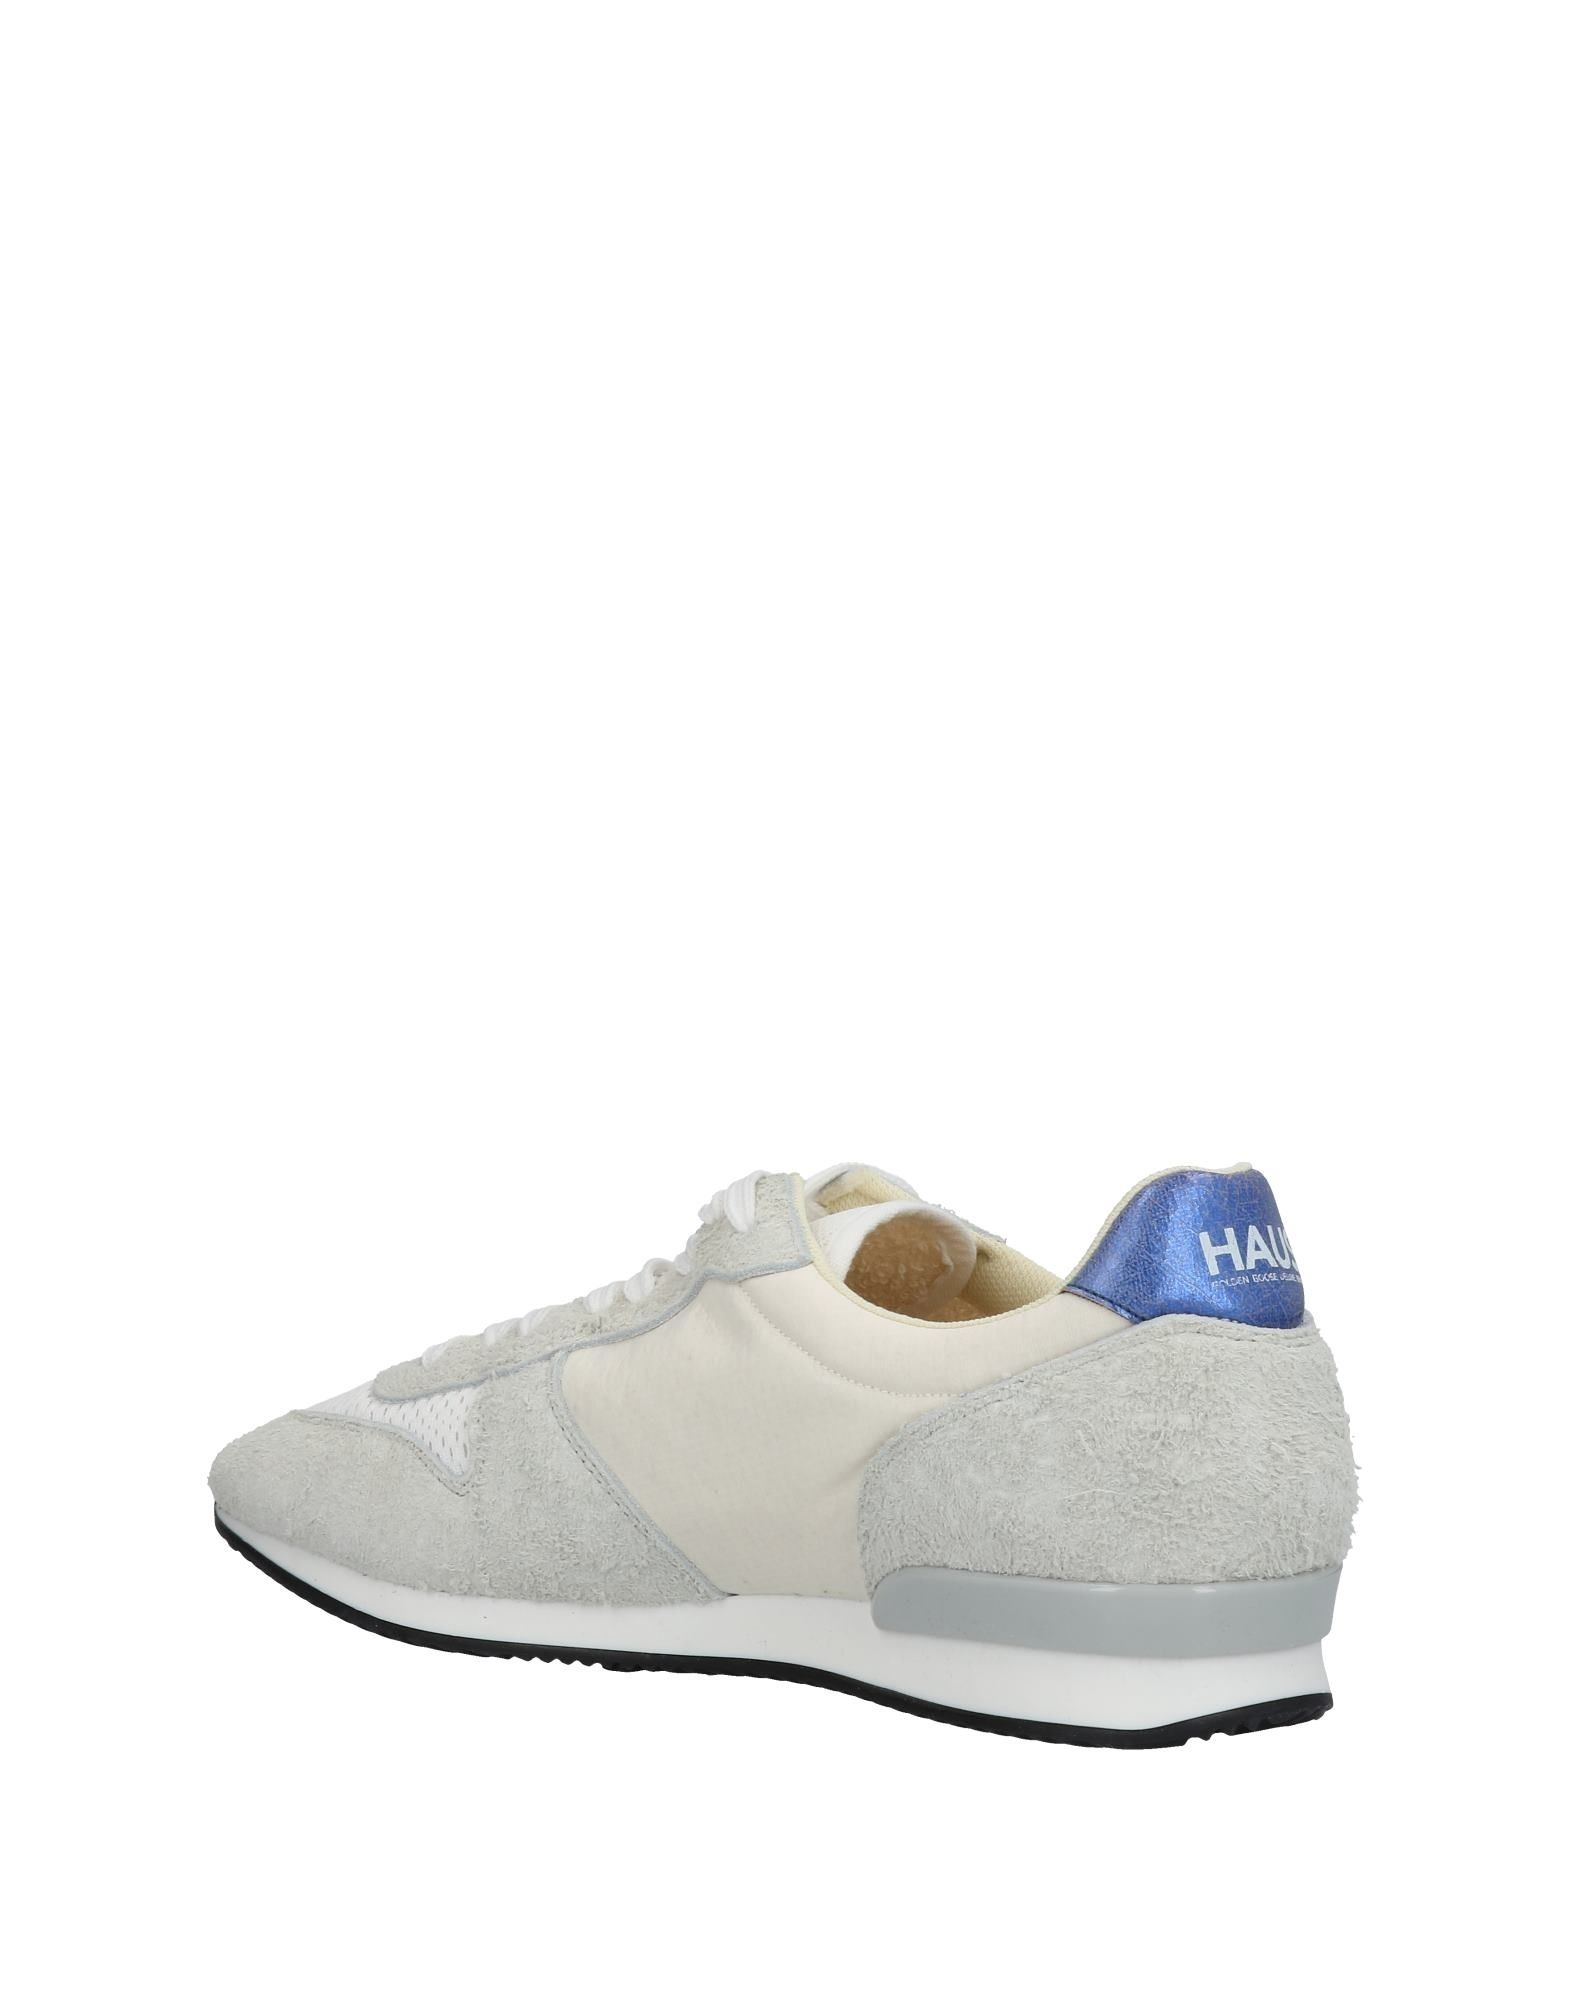 Sneakers Haus Golden Goose Homme - Sneakers Haus Golden Goose sur